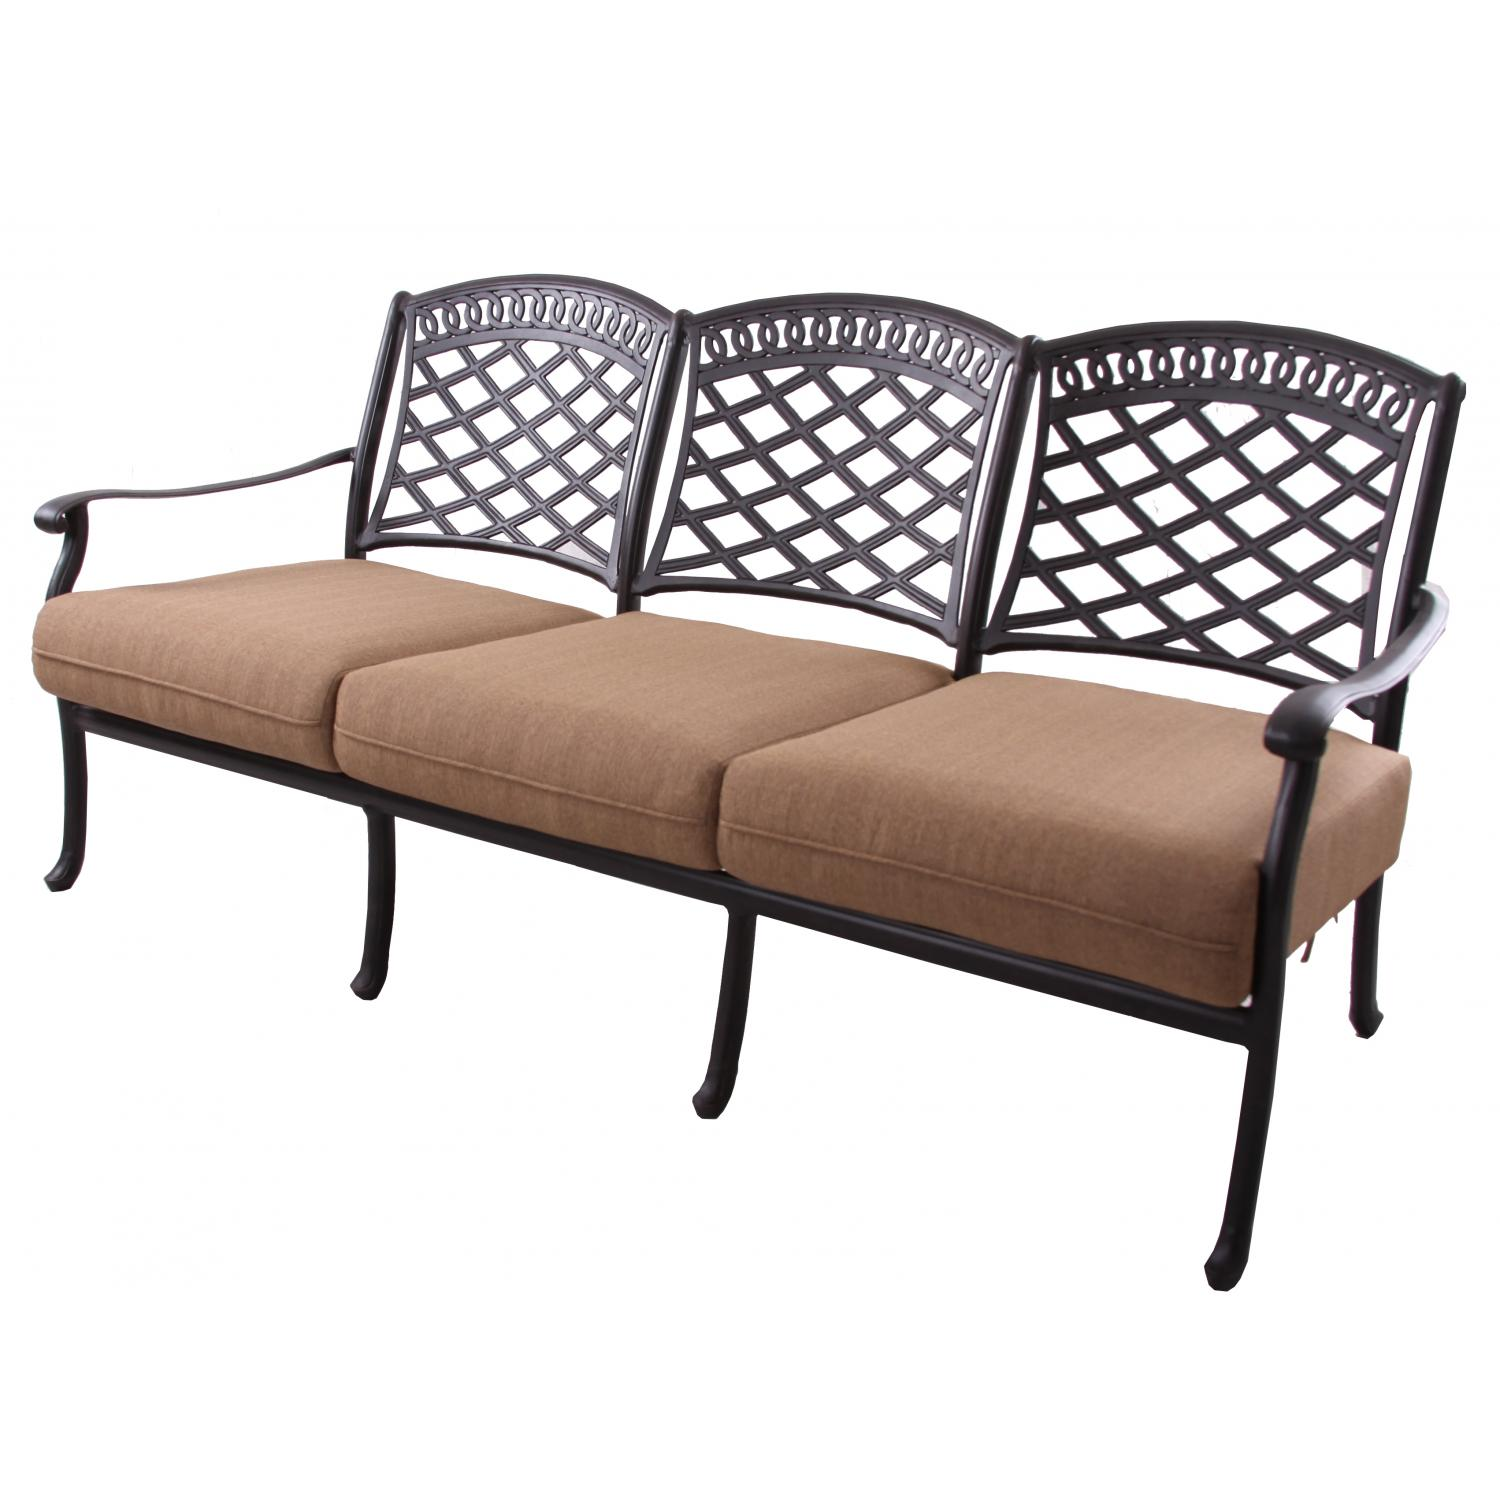 Cast Aluminum Deep Seating Patio Loveseat A 877 743 2269 Darlee Darlee Bed Mattress Sale